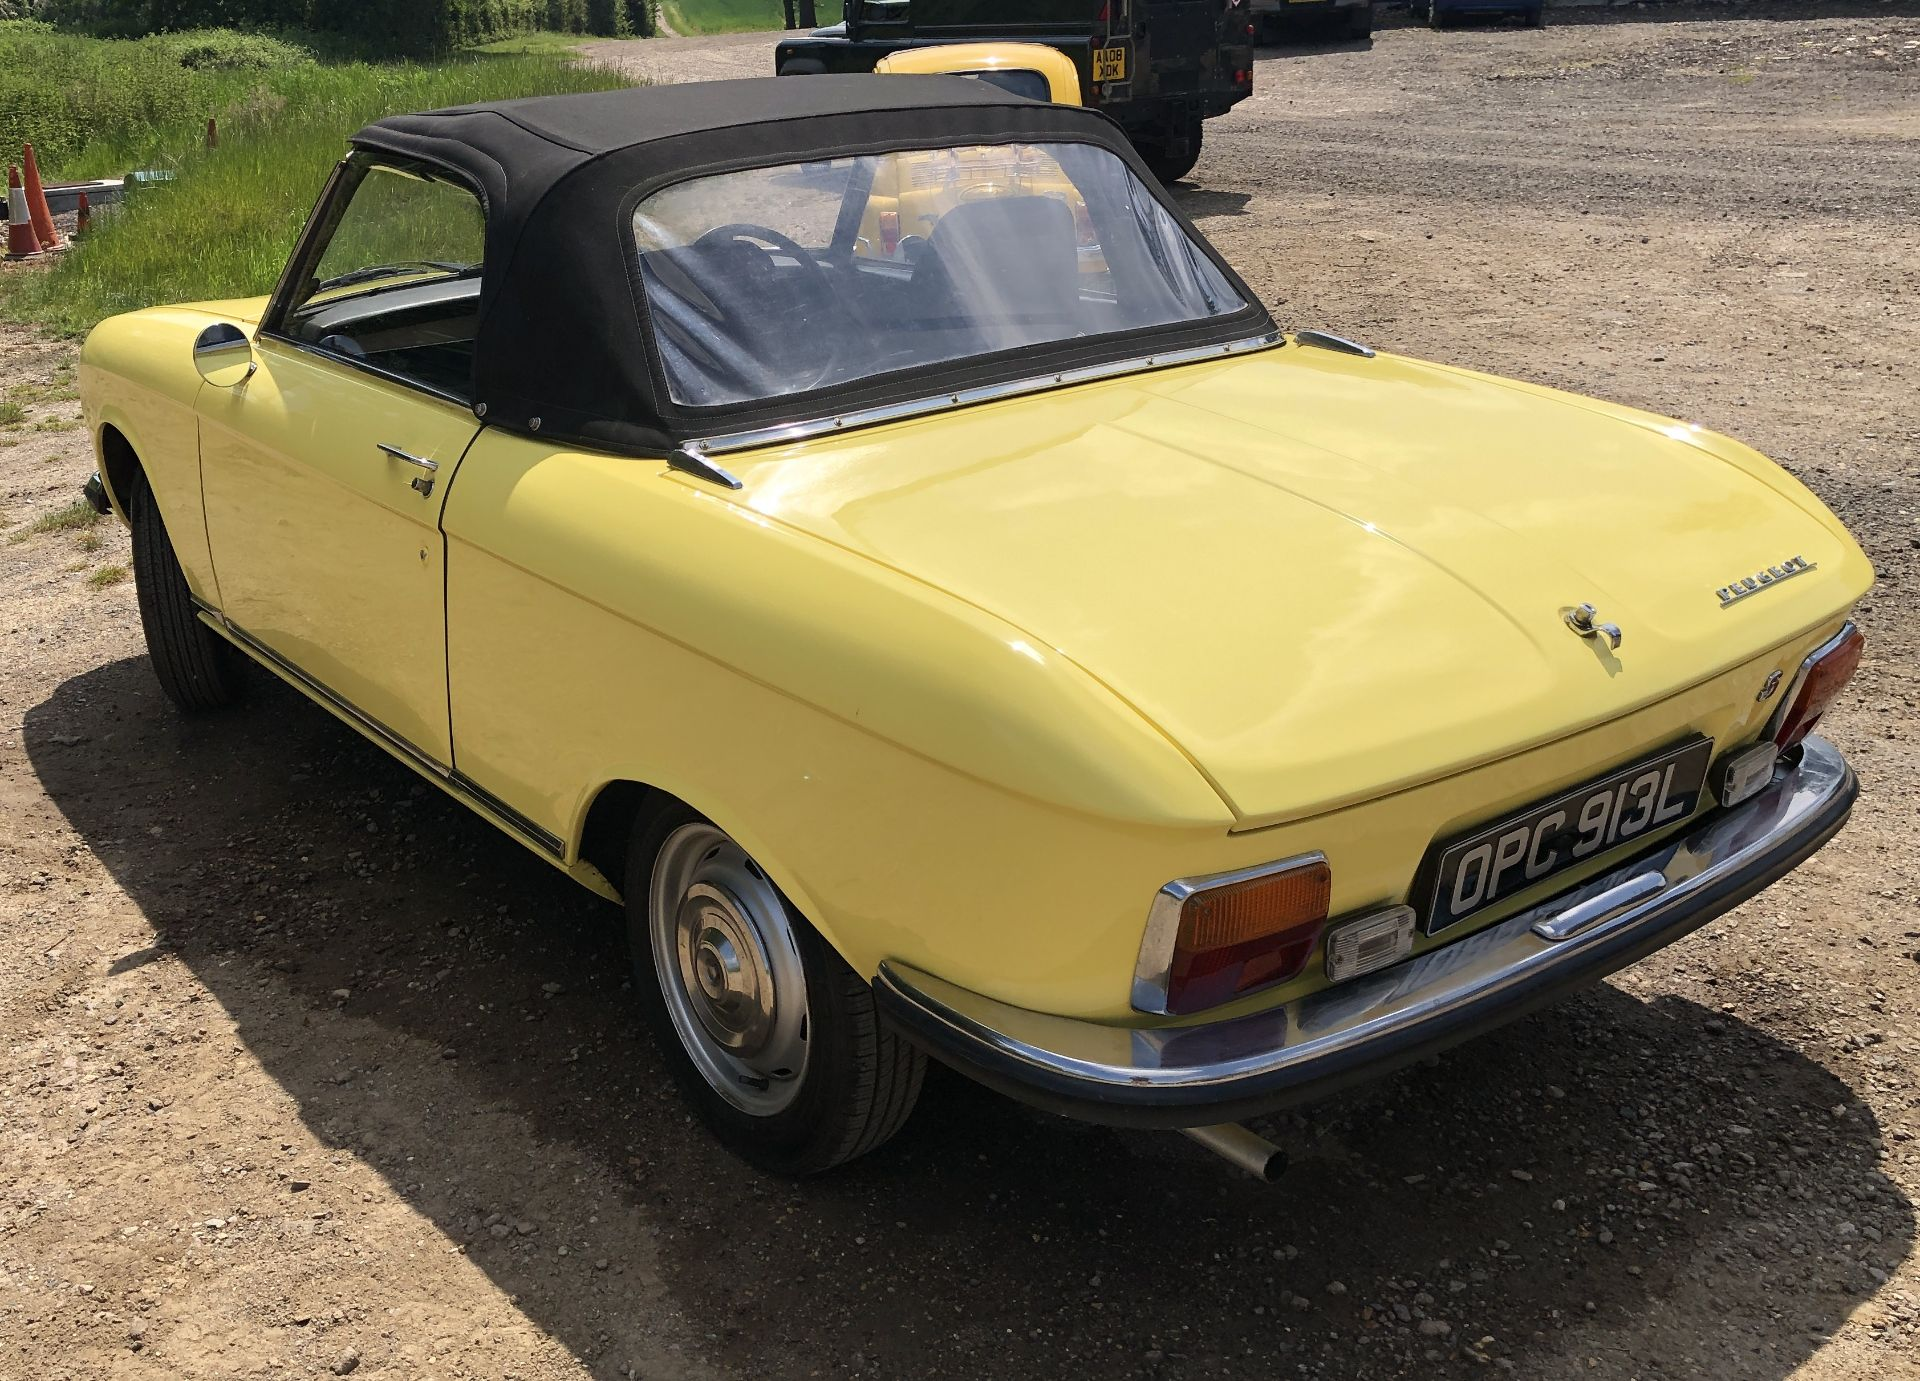 Rare Right Hand Drive Peugeot 304 Convertible, Registration OPC 913L, First Registered 2nd - Image 5 of 48